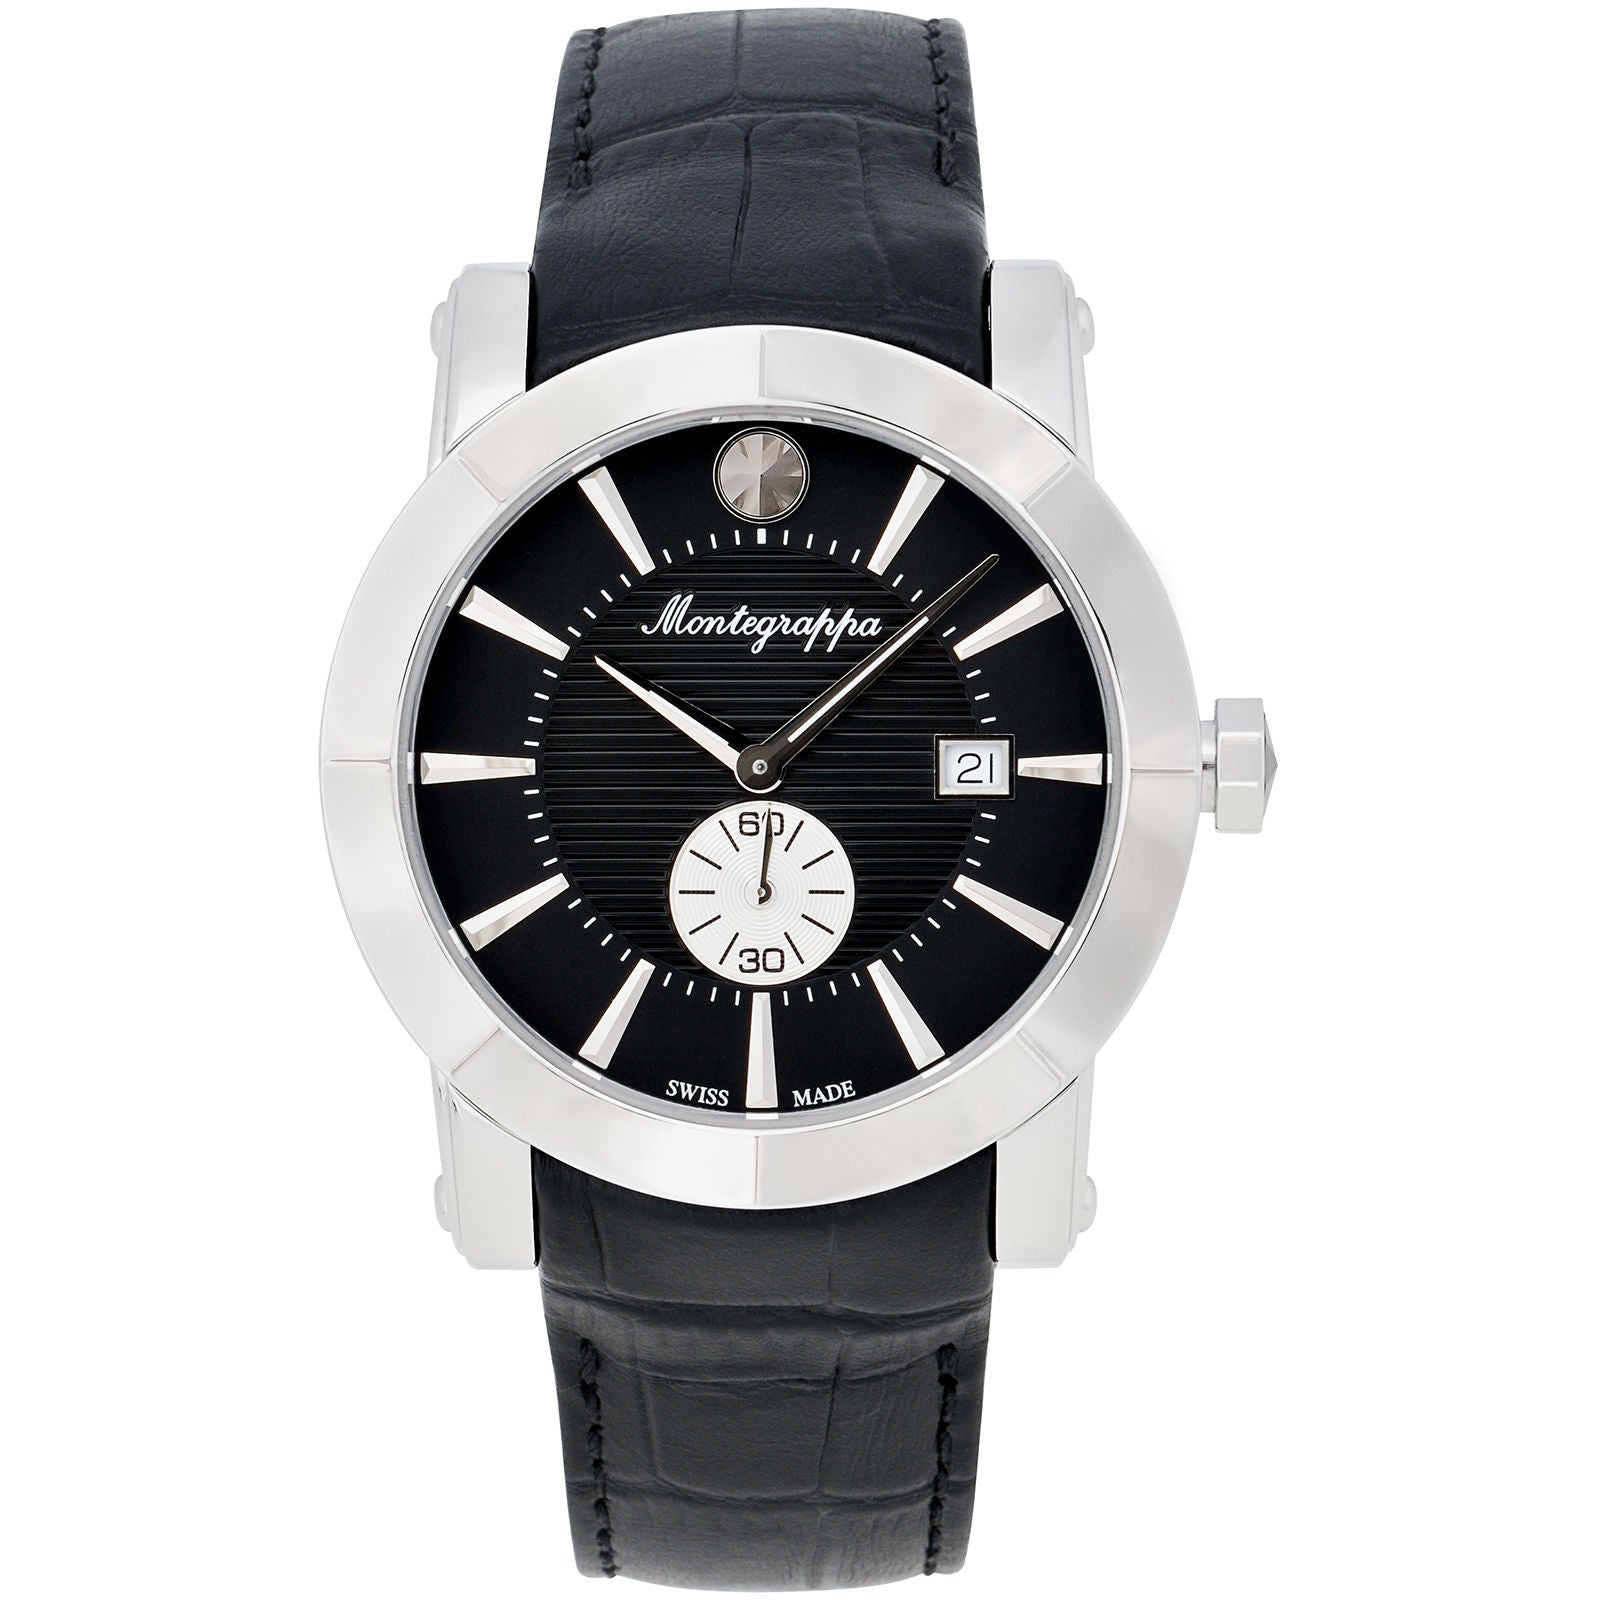 NeroUno Sub Seconds Men's Watch Swiss Made IDNUWAIB Swiss Made-Luxury Watches | Mens And Ladies Luxury Watches | Upscale Time